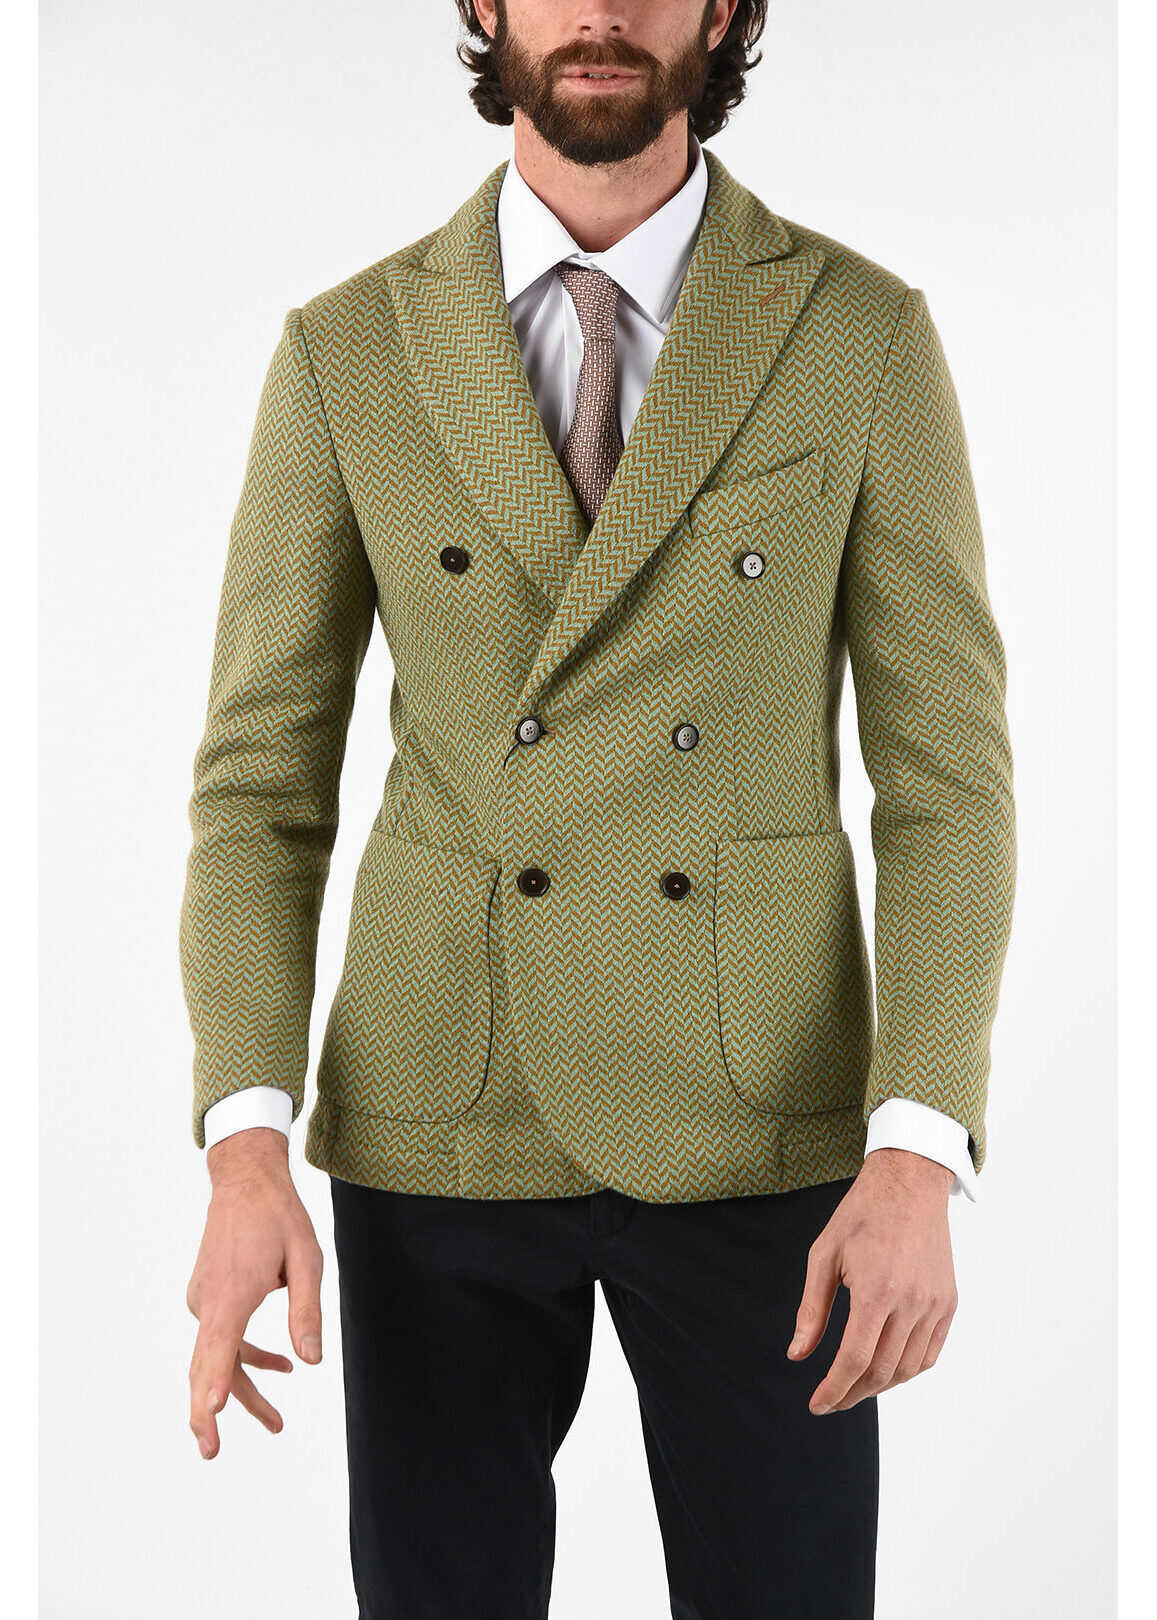 CORNELIANI CC COLLECTION drop 8R side vents dWOLLY 6 ouble-breasted bla GREEN imagine